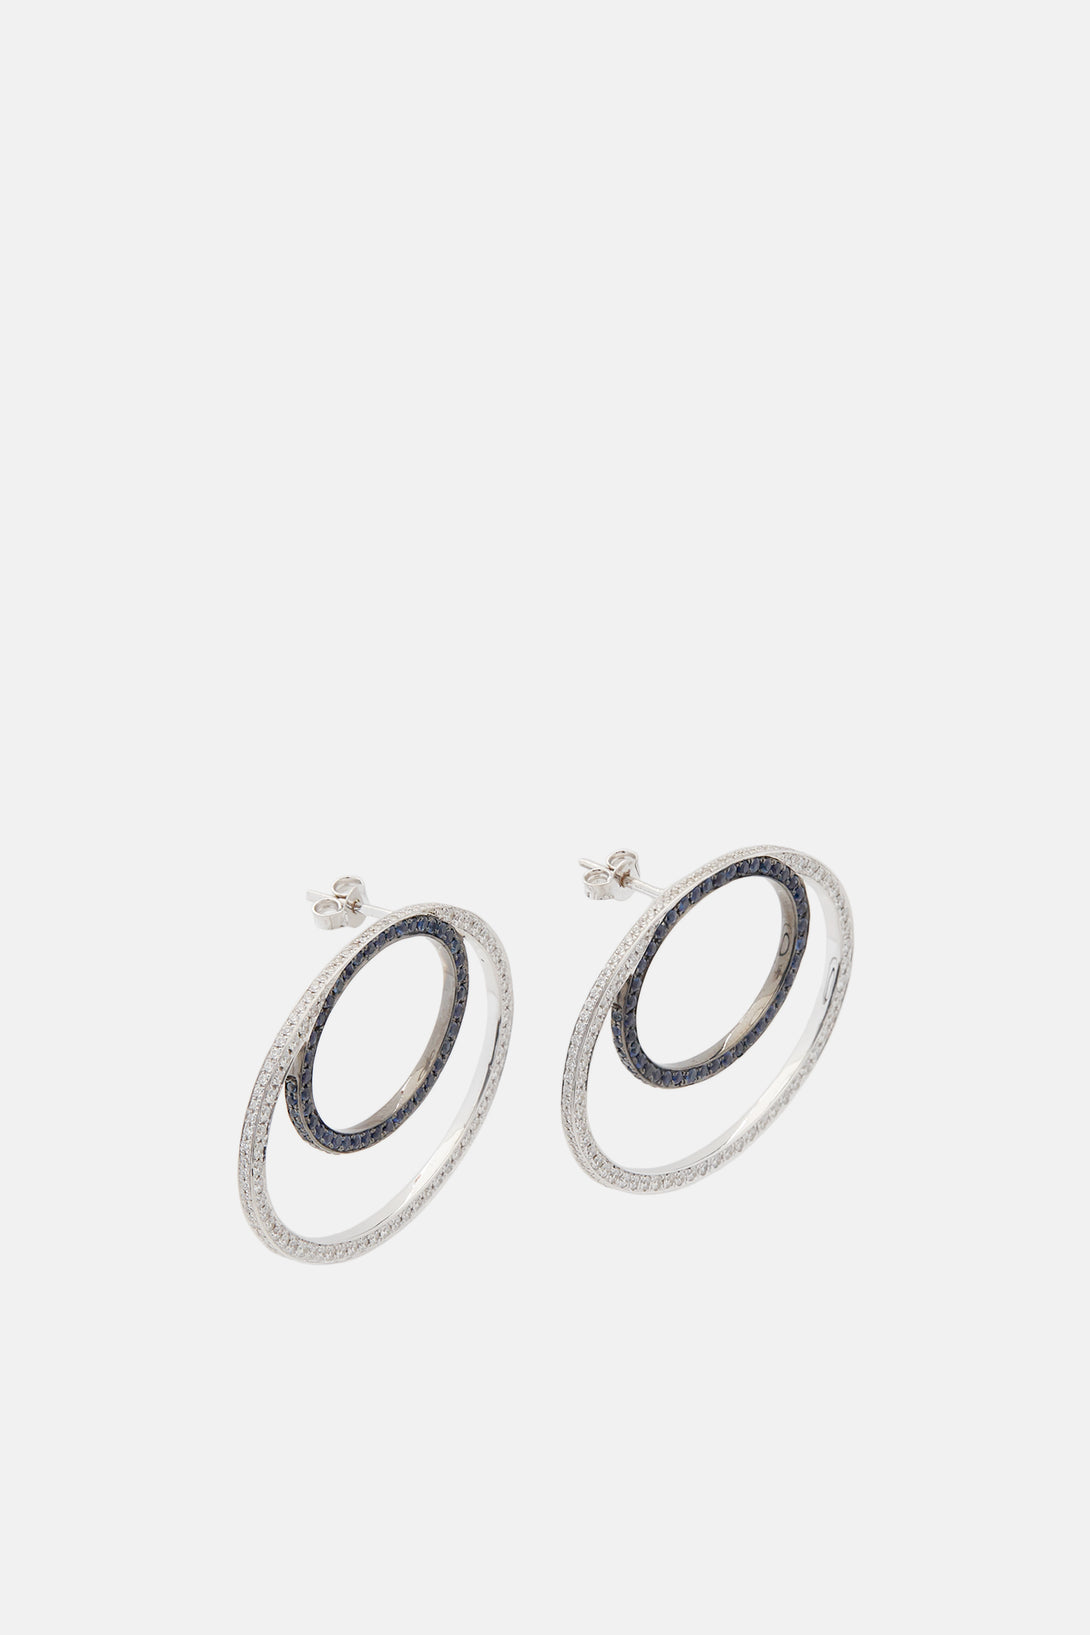 modern silver abstract modernist designs products boomerang earrings century hoop smashfire mid sterling